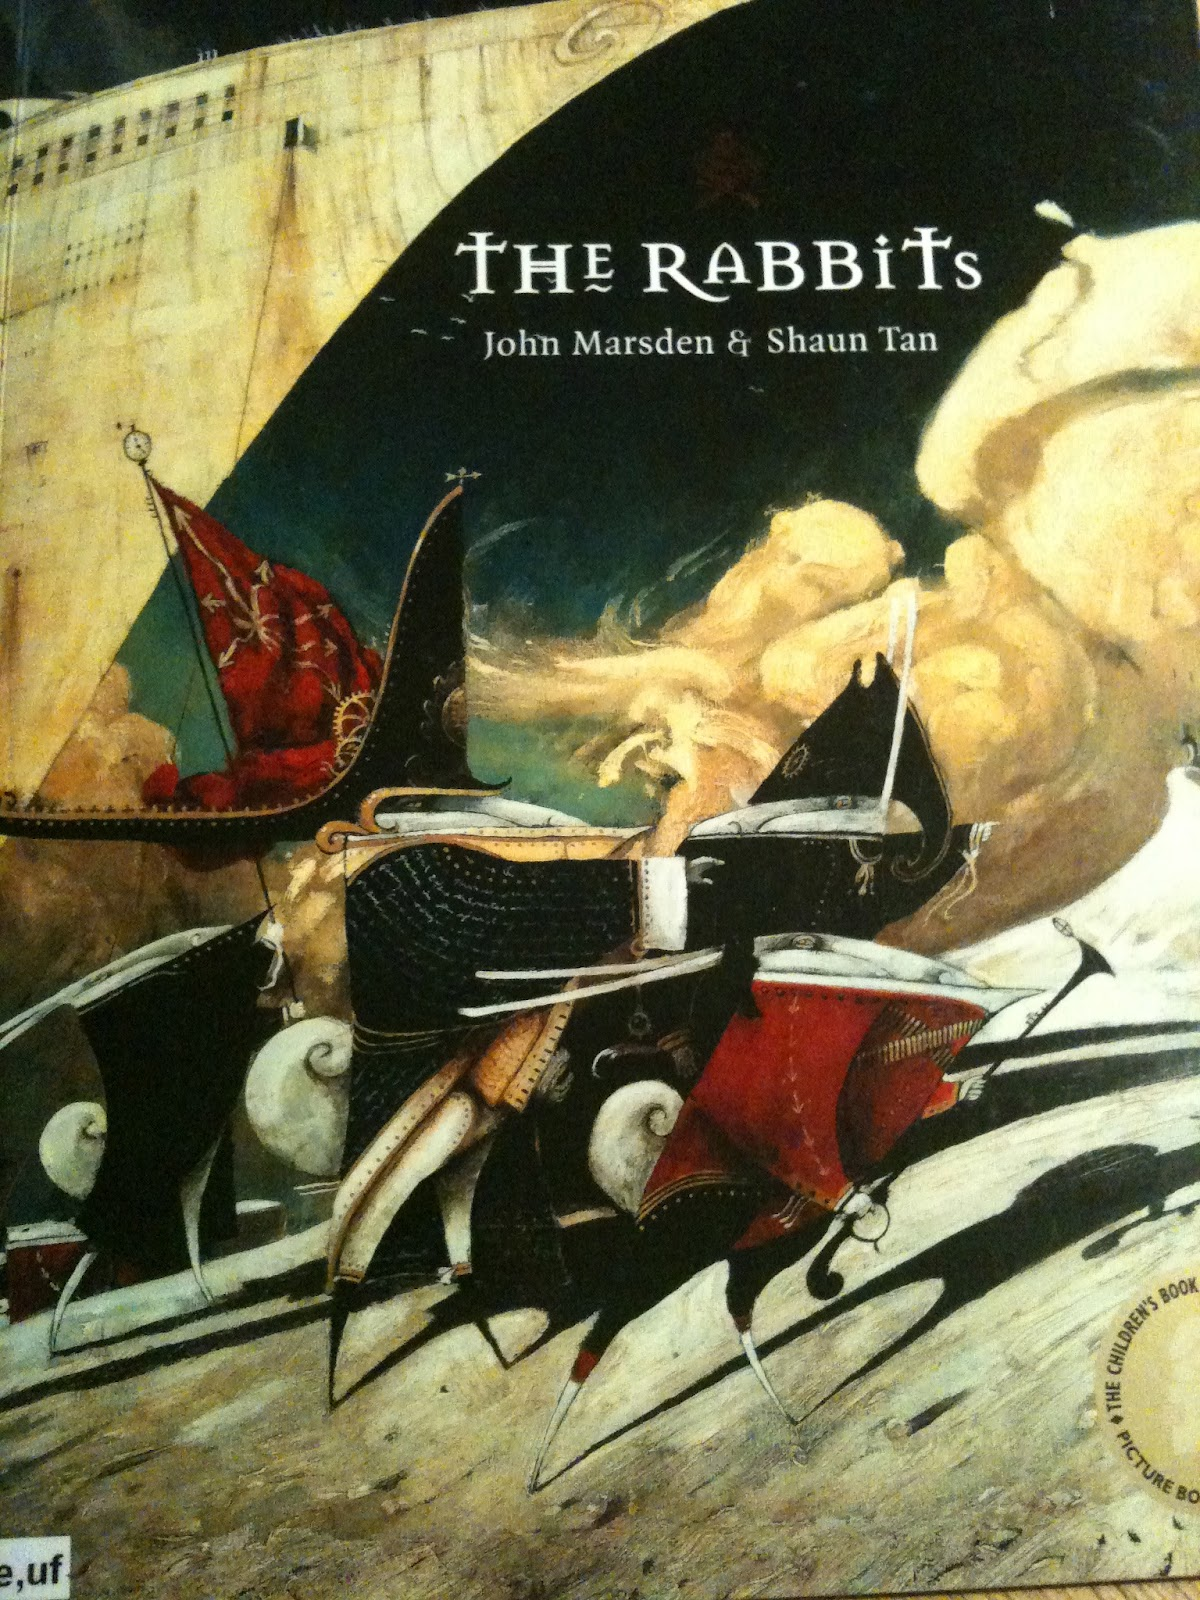 the rabbits by shaun tan and john marsden essay